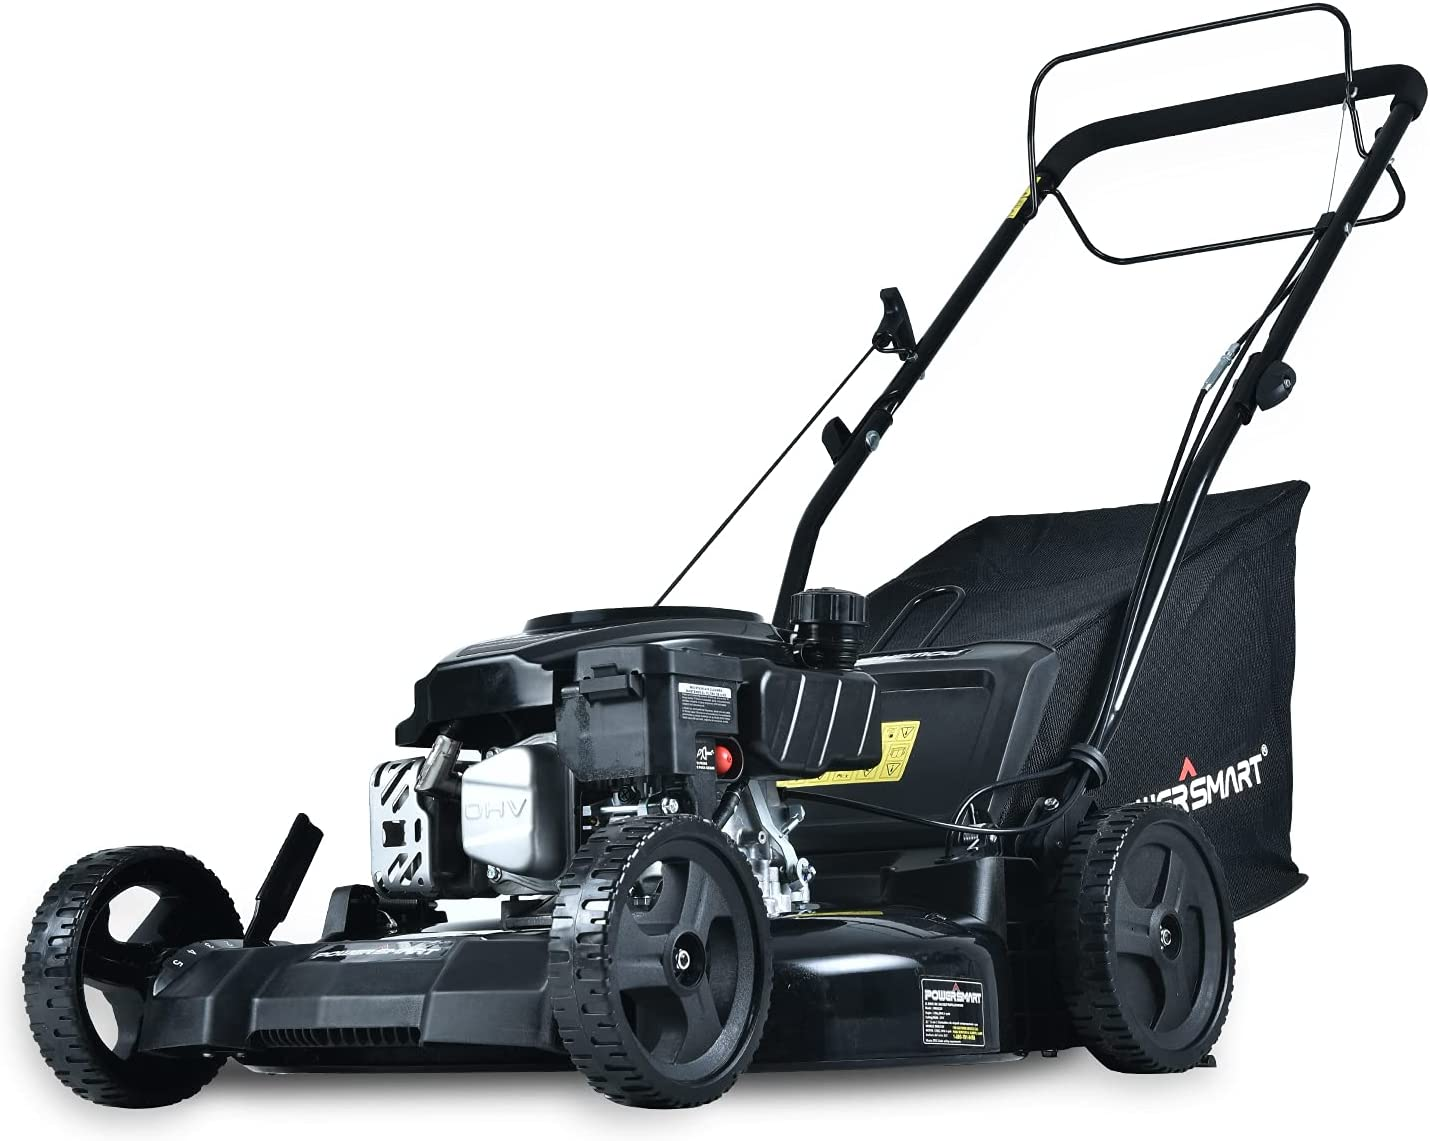 PowerSmart Lawn Mower, 21-inch & 170CC, Gas Powered Self-Propelled Lawn Mower with 4-Stroke Engine, 3-in-1 Gas Mower in Color Black, 5 Adjustable Heights (1.18''-3.0'' ), DB8621SR